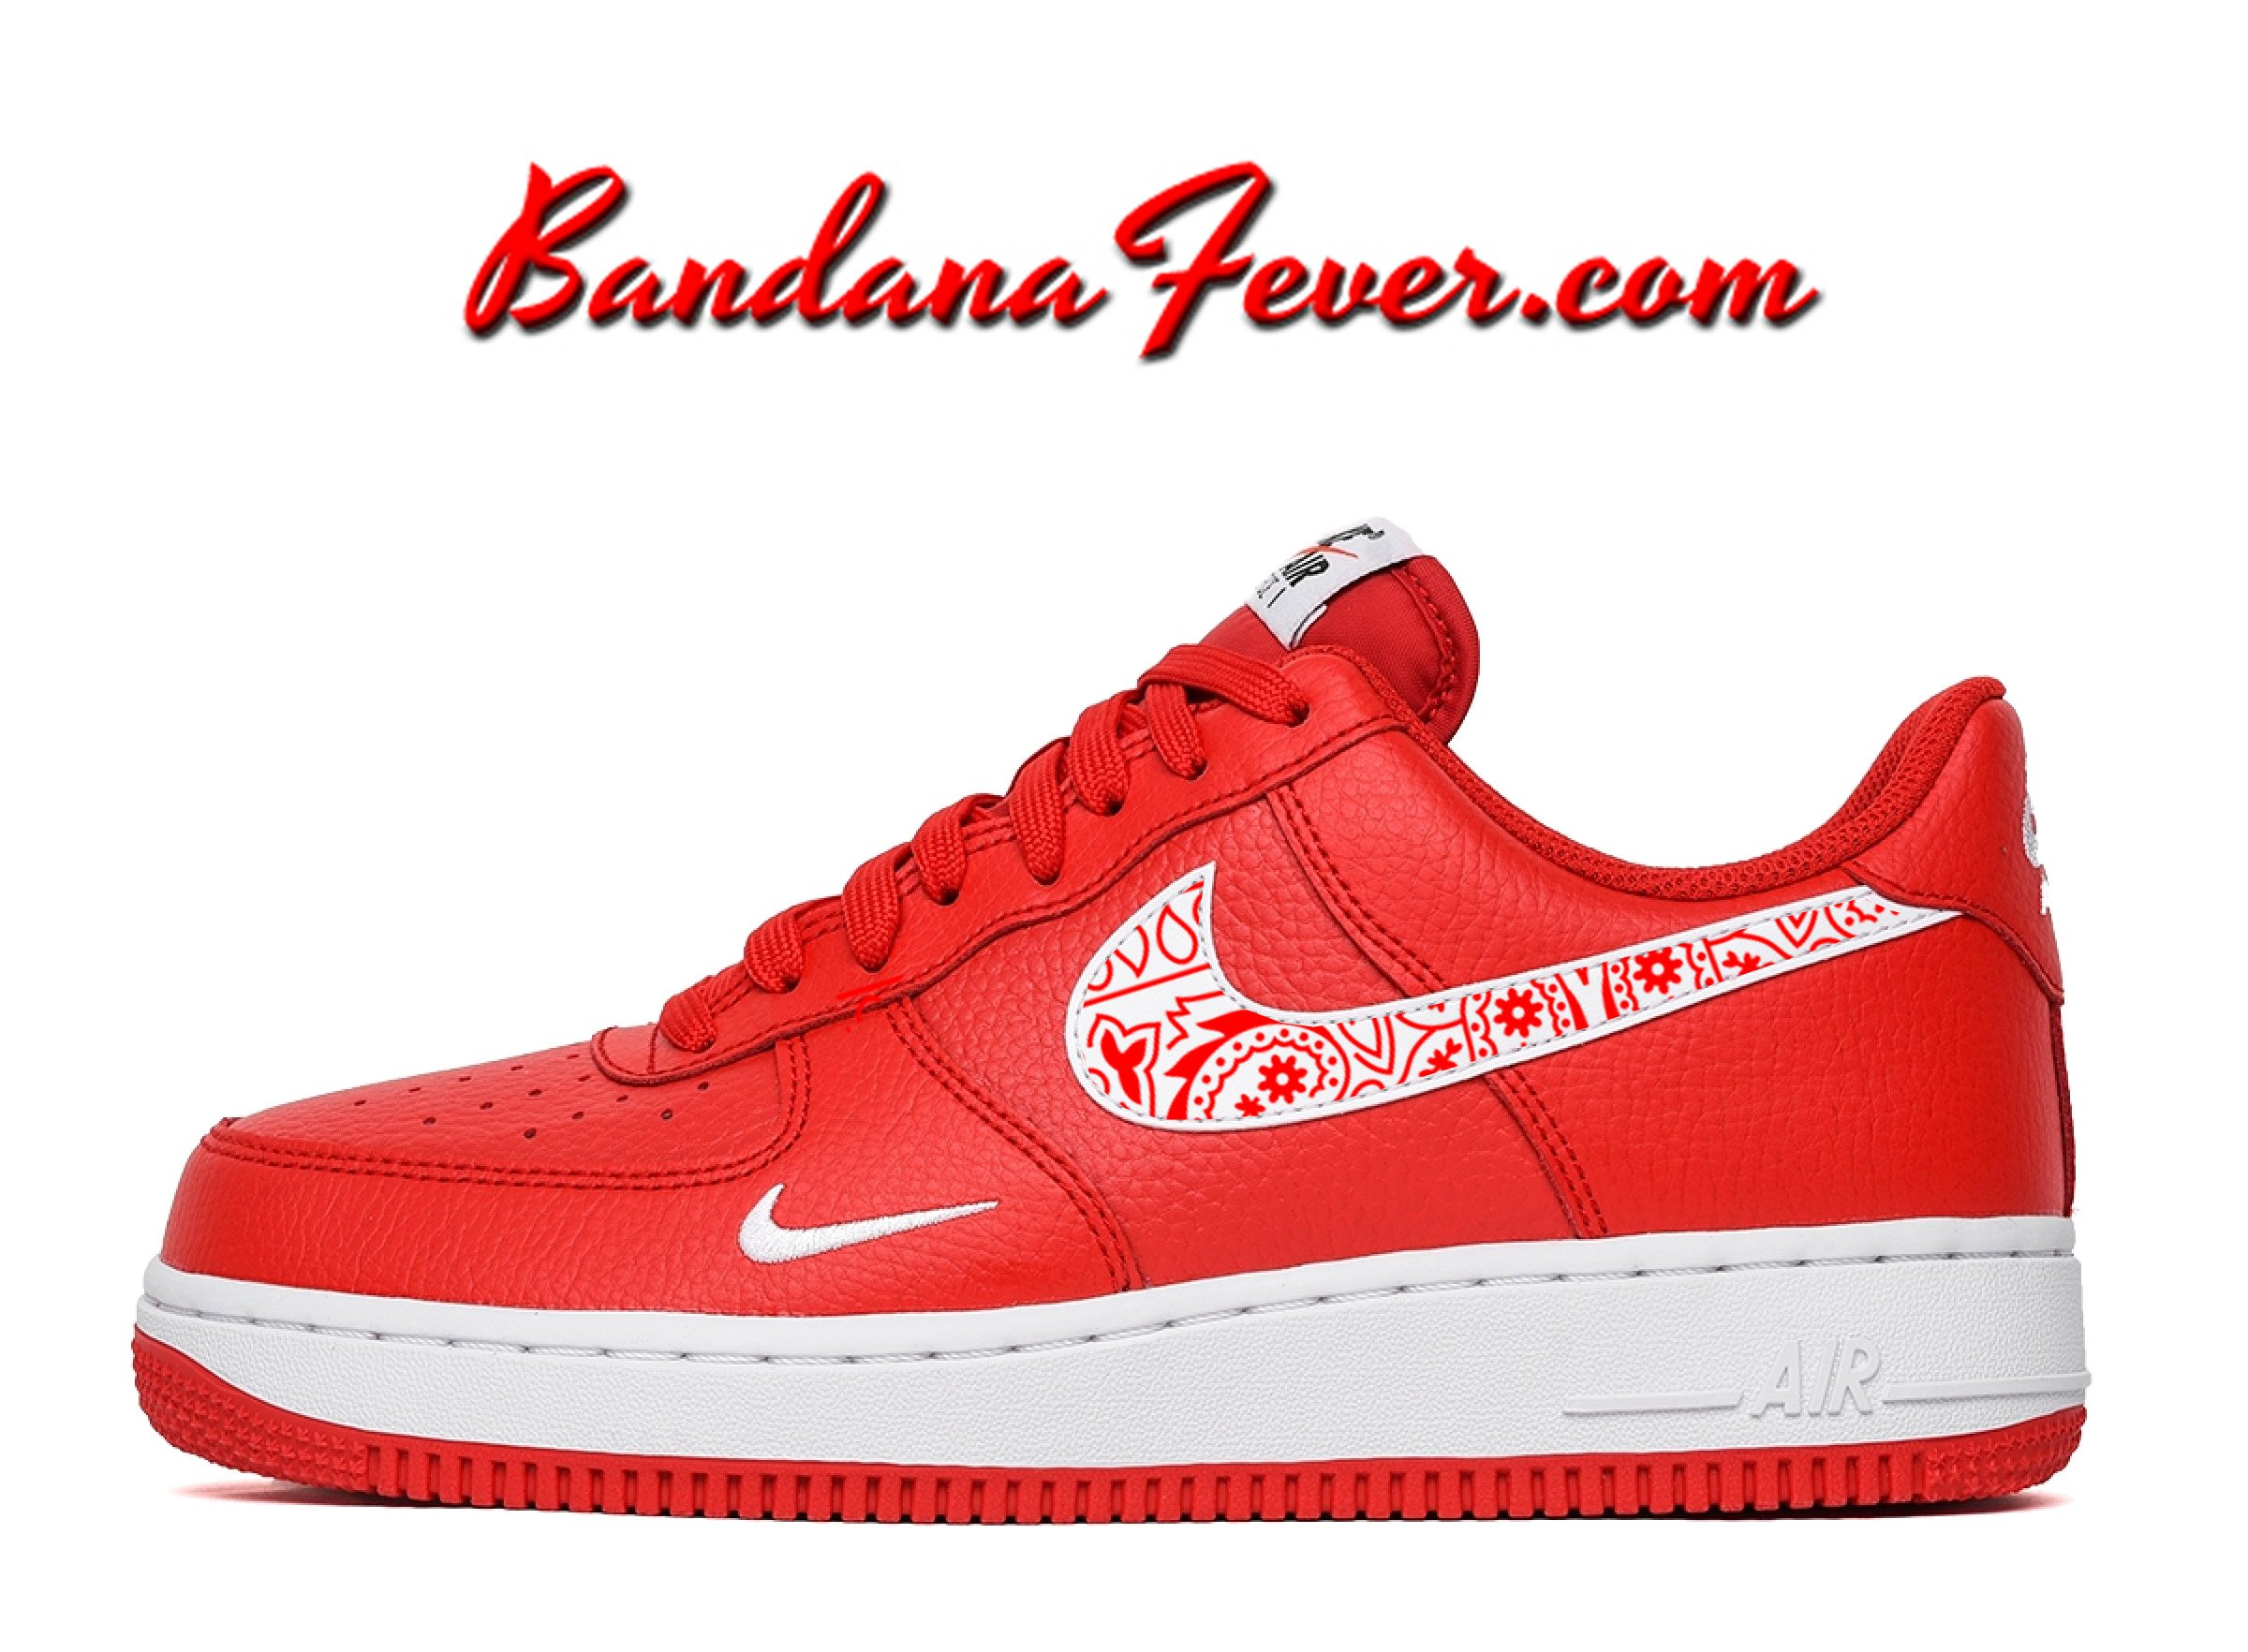 reputable site 5e073 ca66b Custom Red Bandana Nike Air Force 1 Shoes University Red Low,  paisley,   bandanna, by Bandana Fever